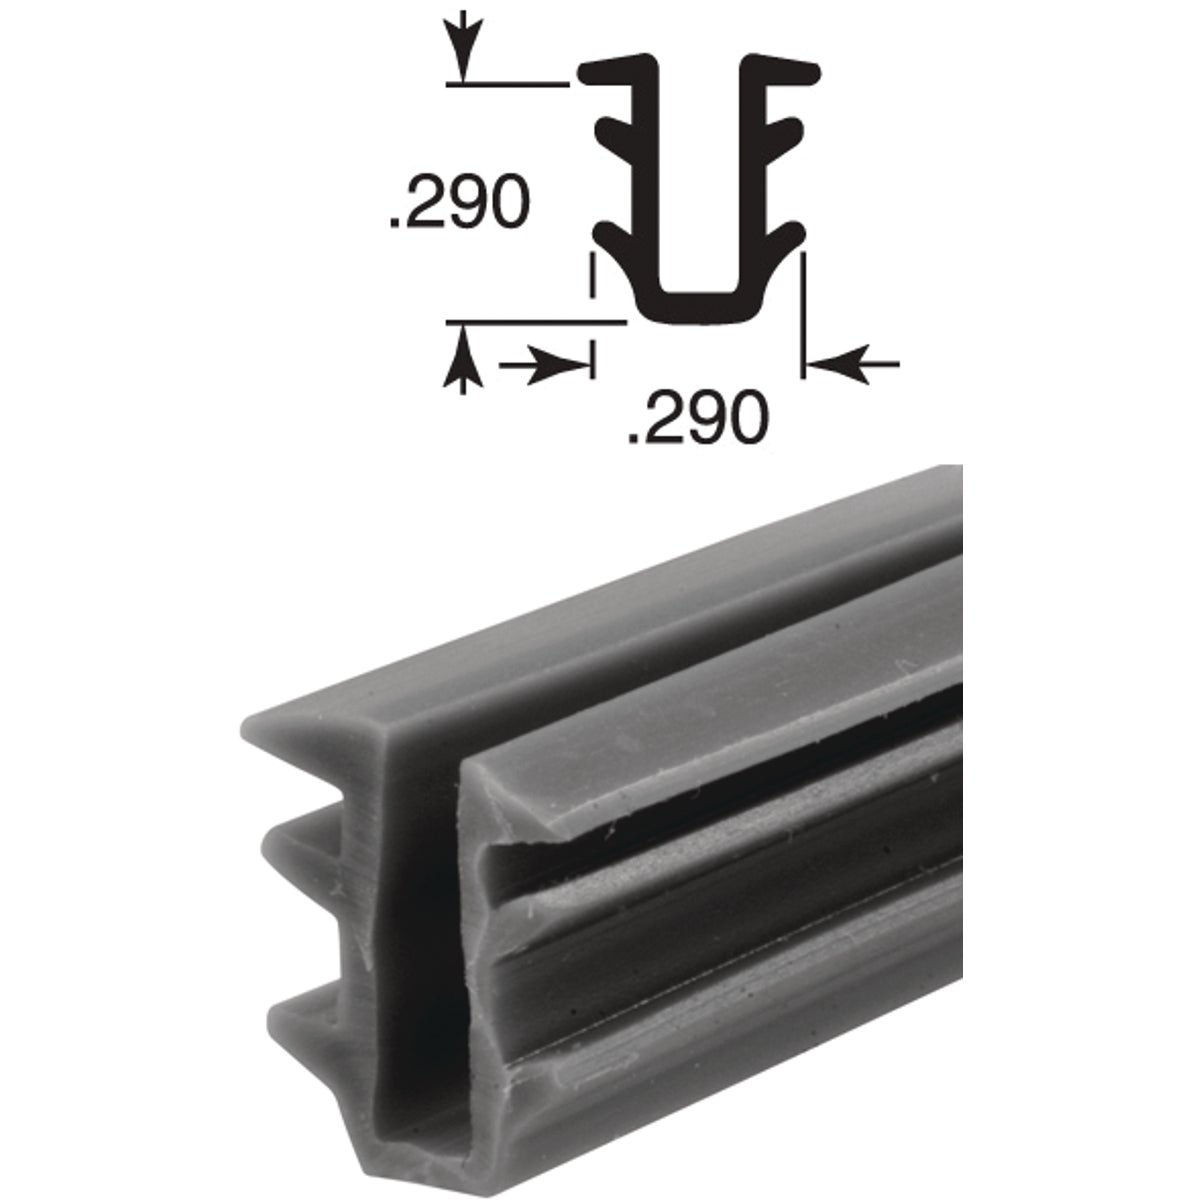 19/64X15/64X100 UCHANNEL - P7741 by Prime Line Products